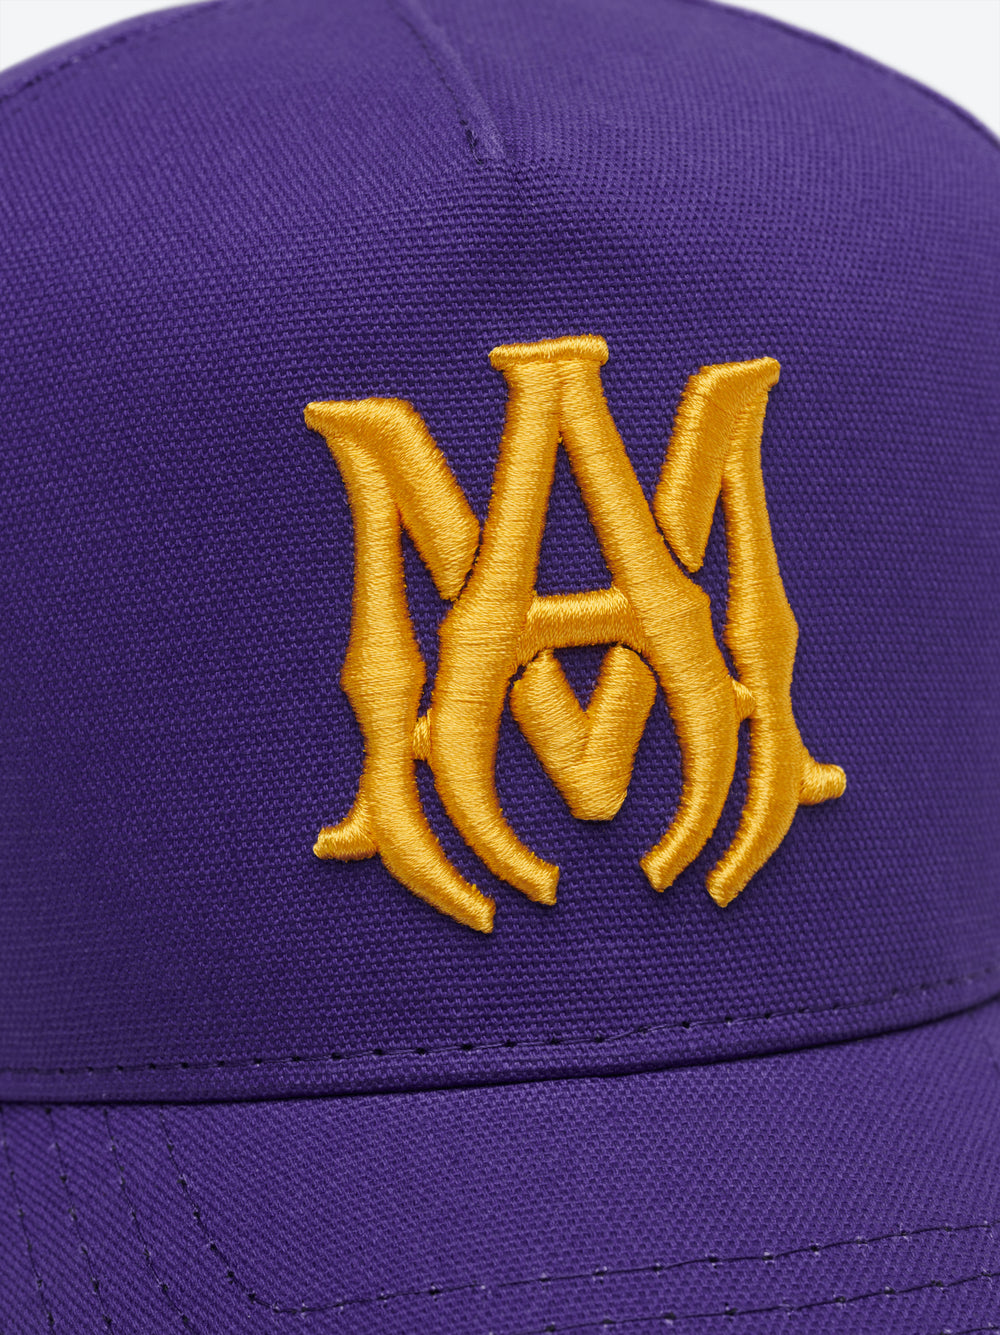 M.A. EMBROIDERED HAT - PURPLE